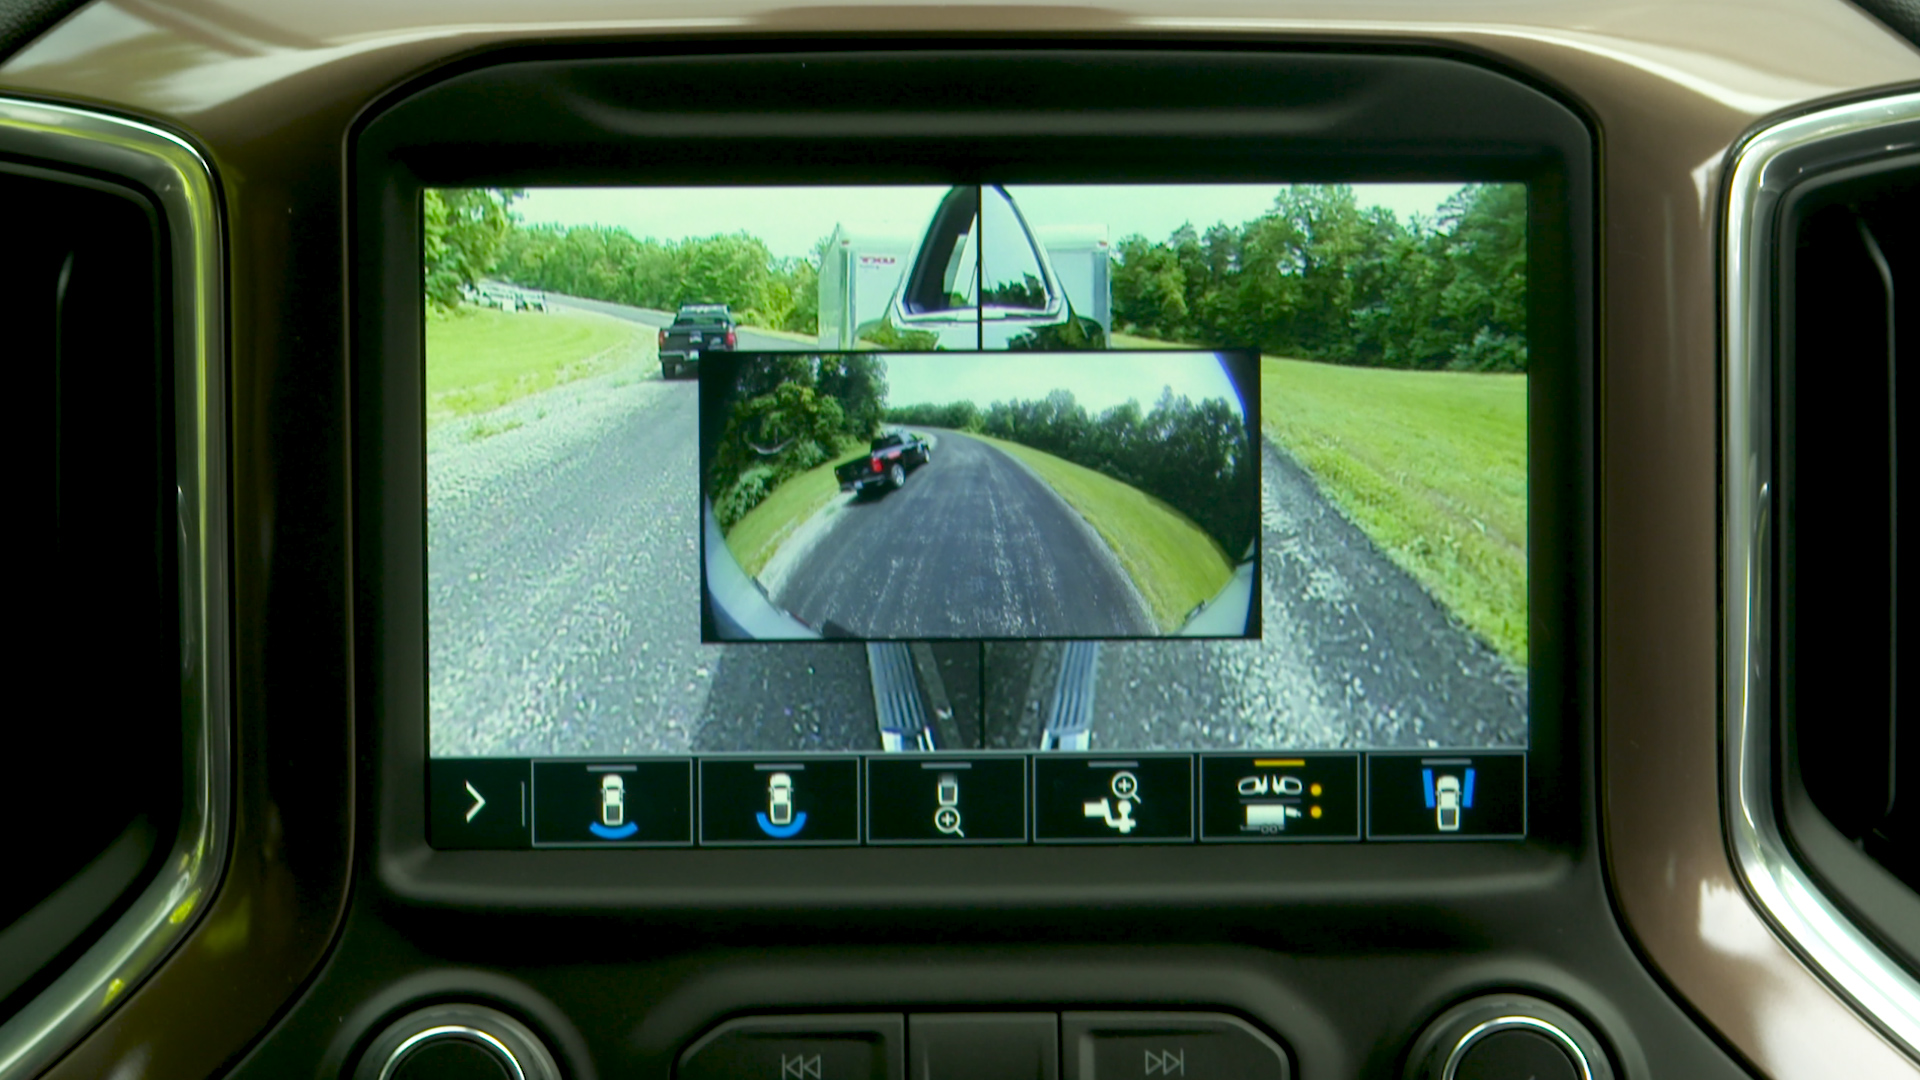 2019 Chevrolet Silverado 1500 Gets Advanced Towing features new rear camera